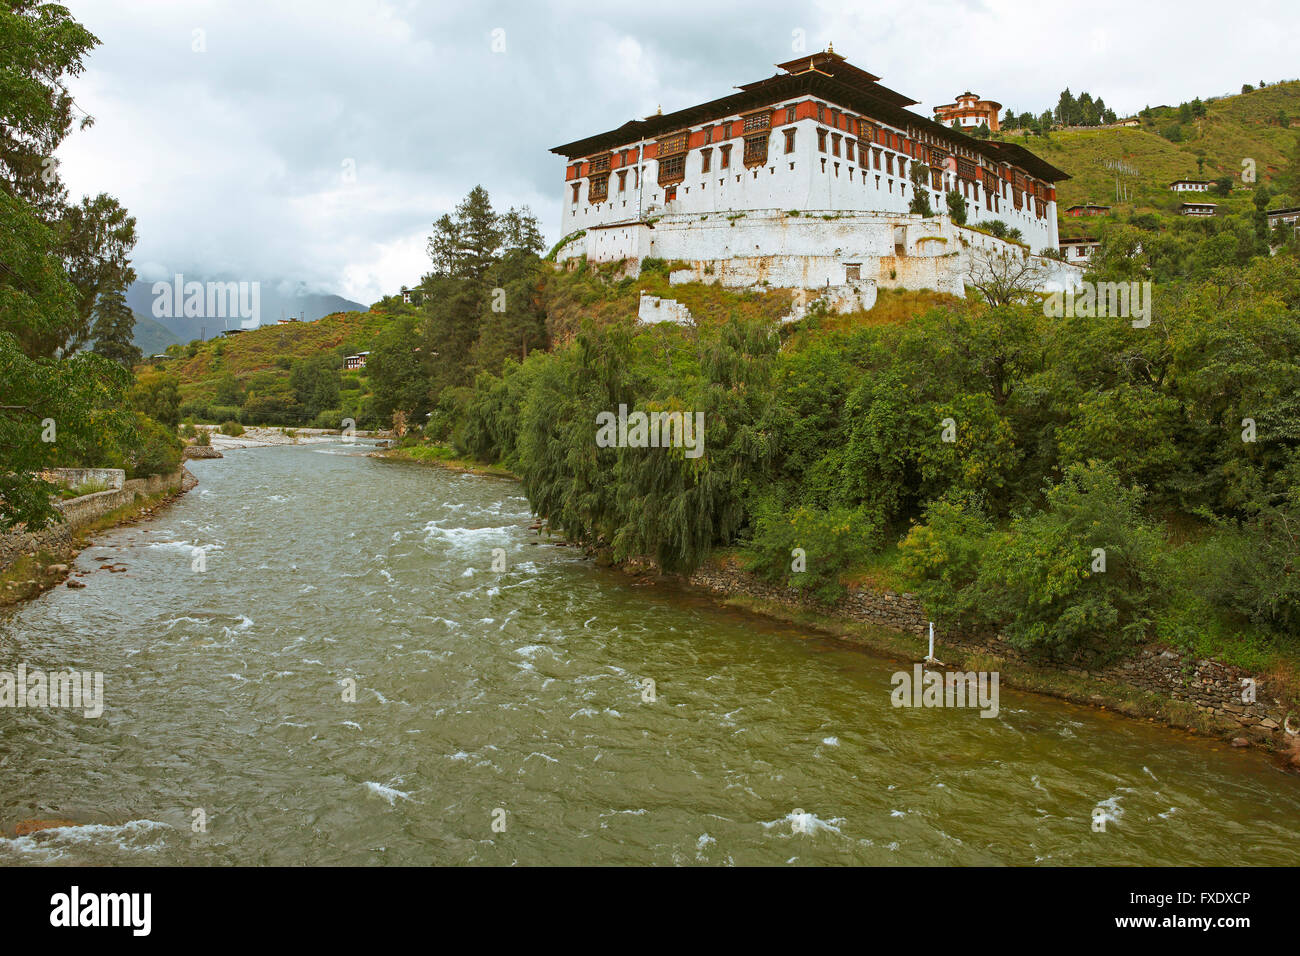 Monastery Paro Dzong at Paro Chhu, Bhutan Stock Photo